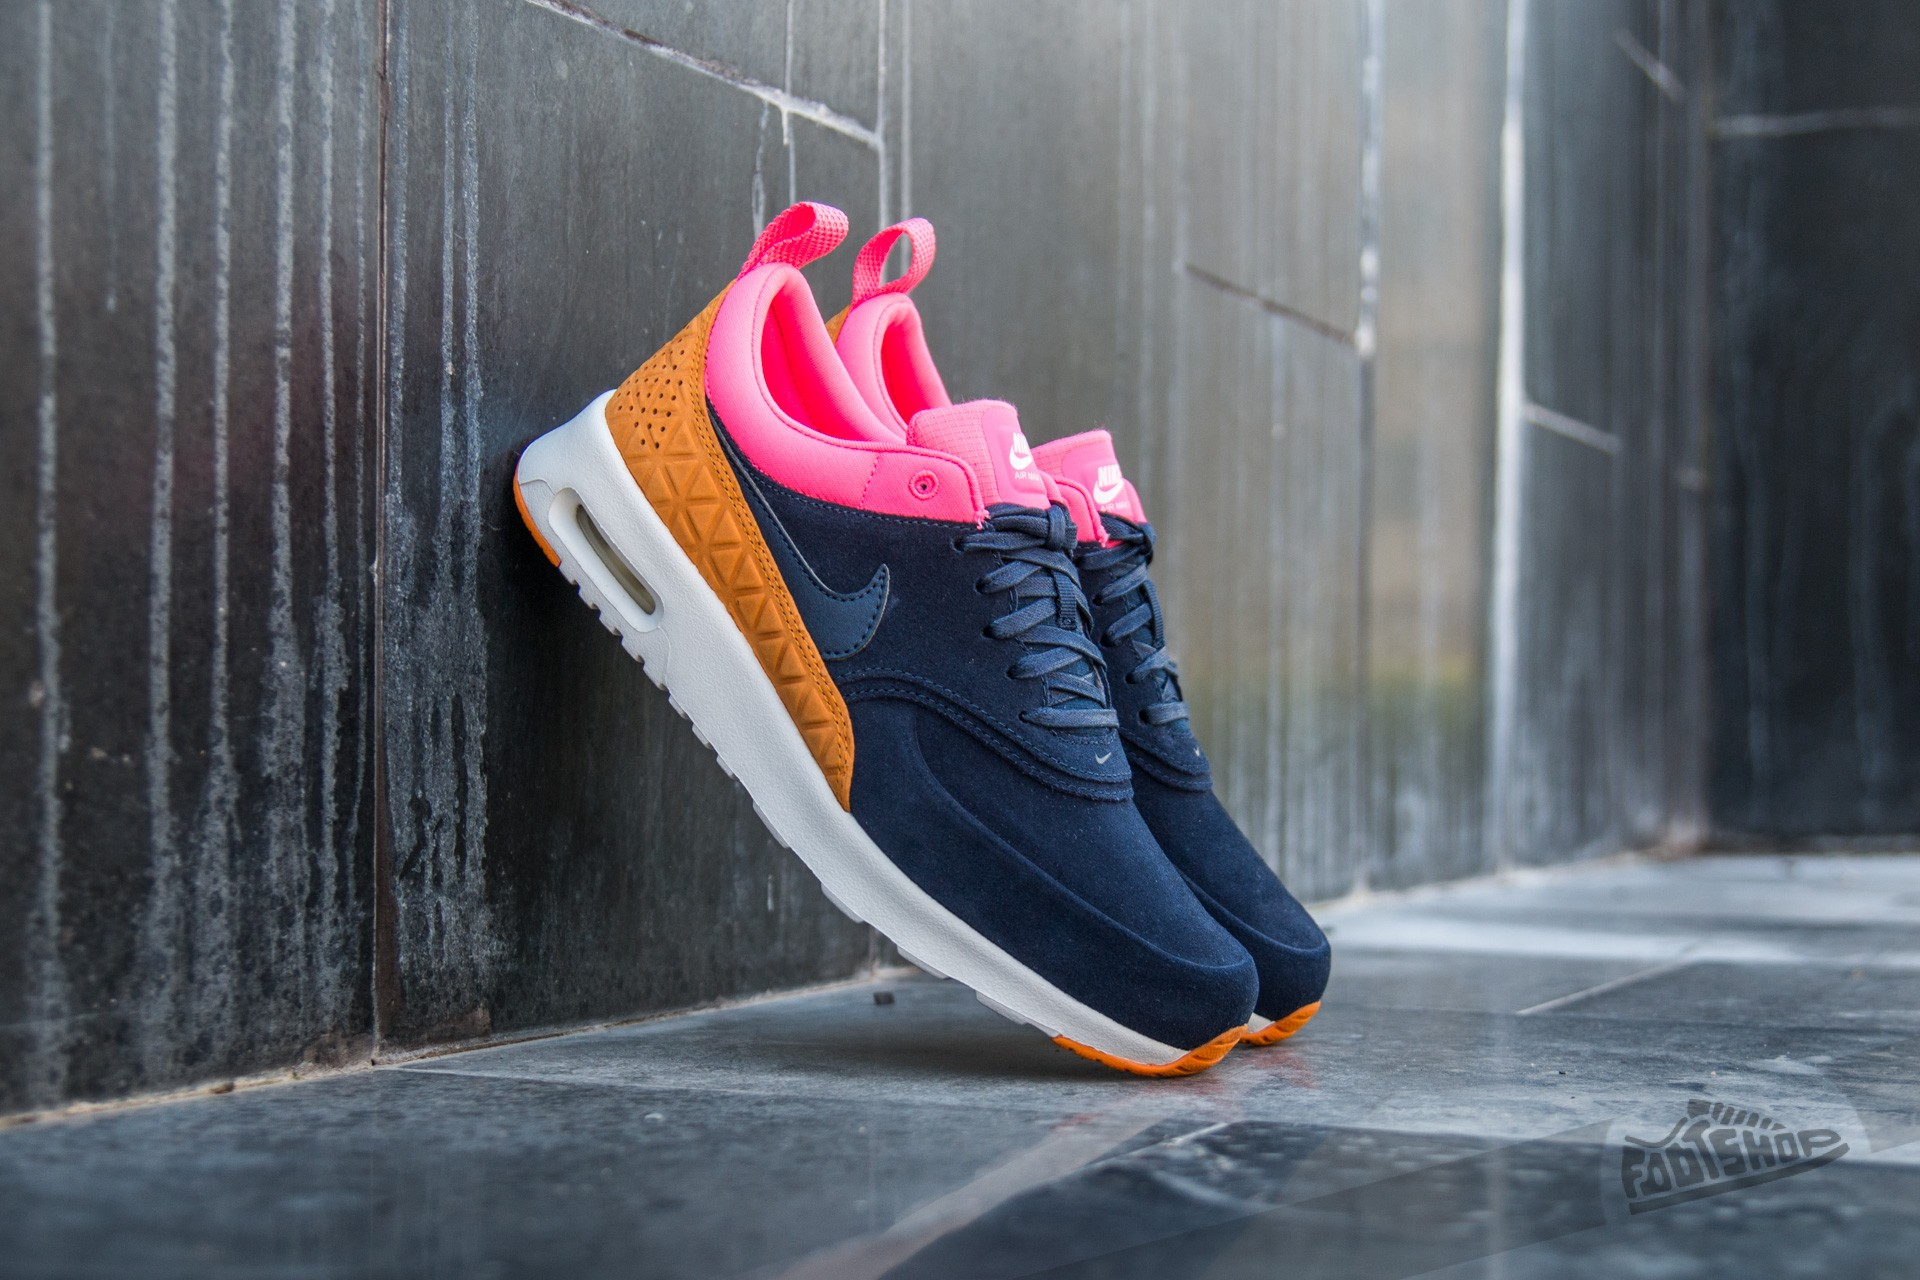 Nike W Air Max Thea Premium Leather Obsidian/ Obsidian-Digital Pink-Sunset